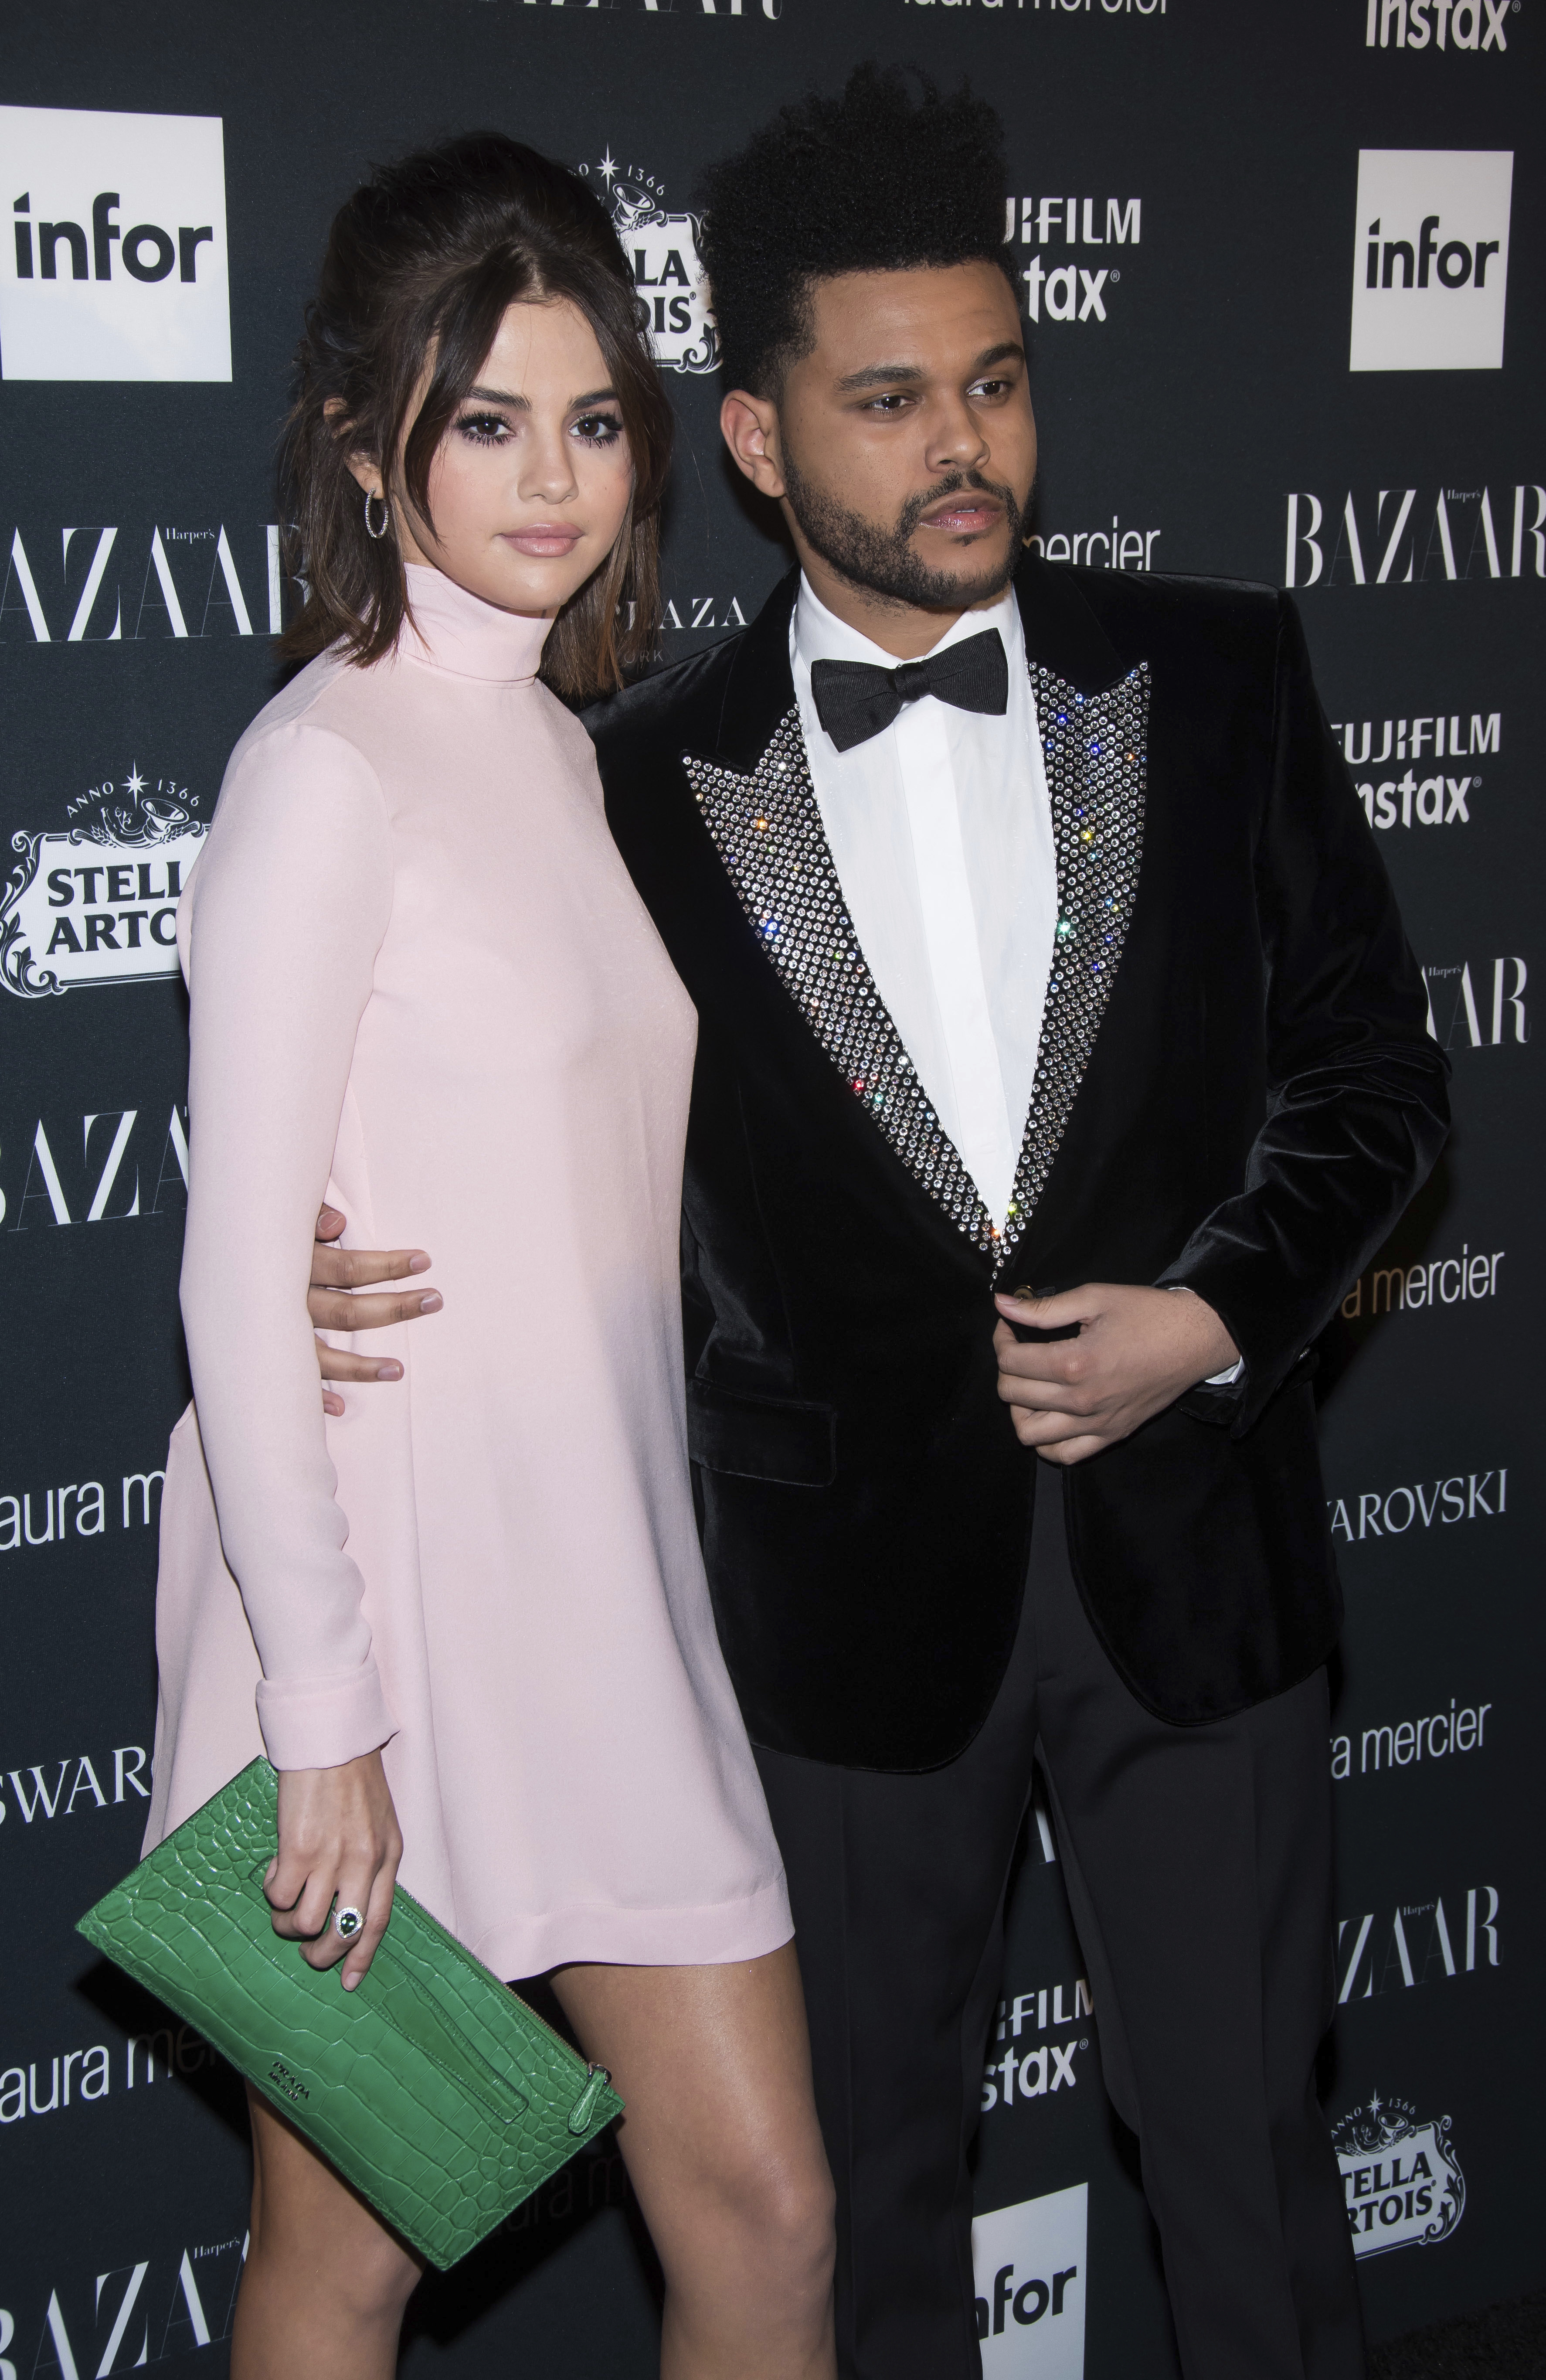 Selena Gomez and The Weeknd attend the Harper's Bazaar ICONS party at New York Fashion Week on Sept. 8, 2017.